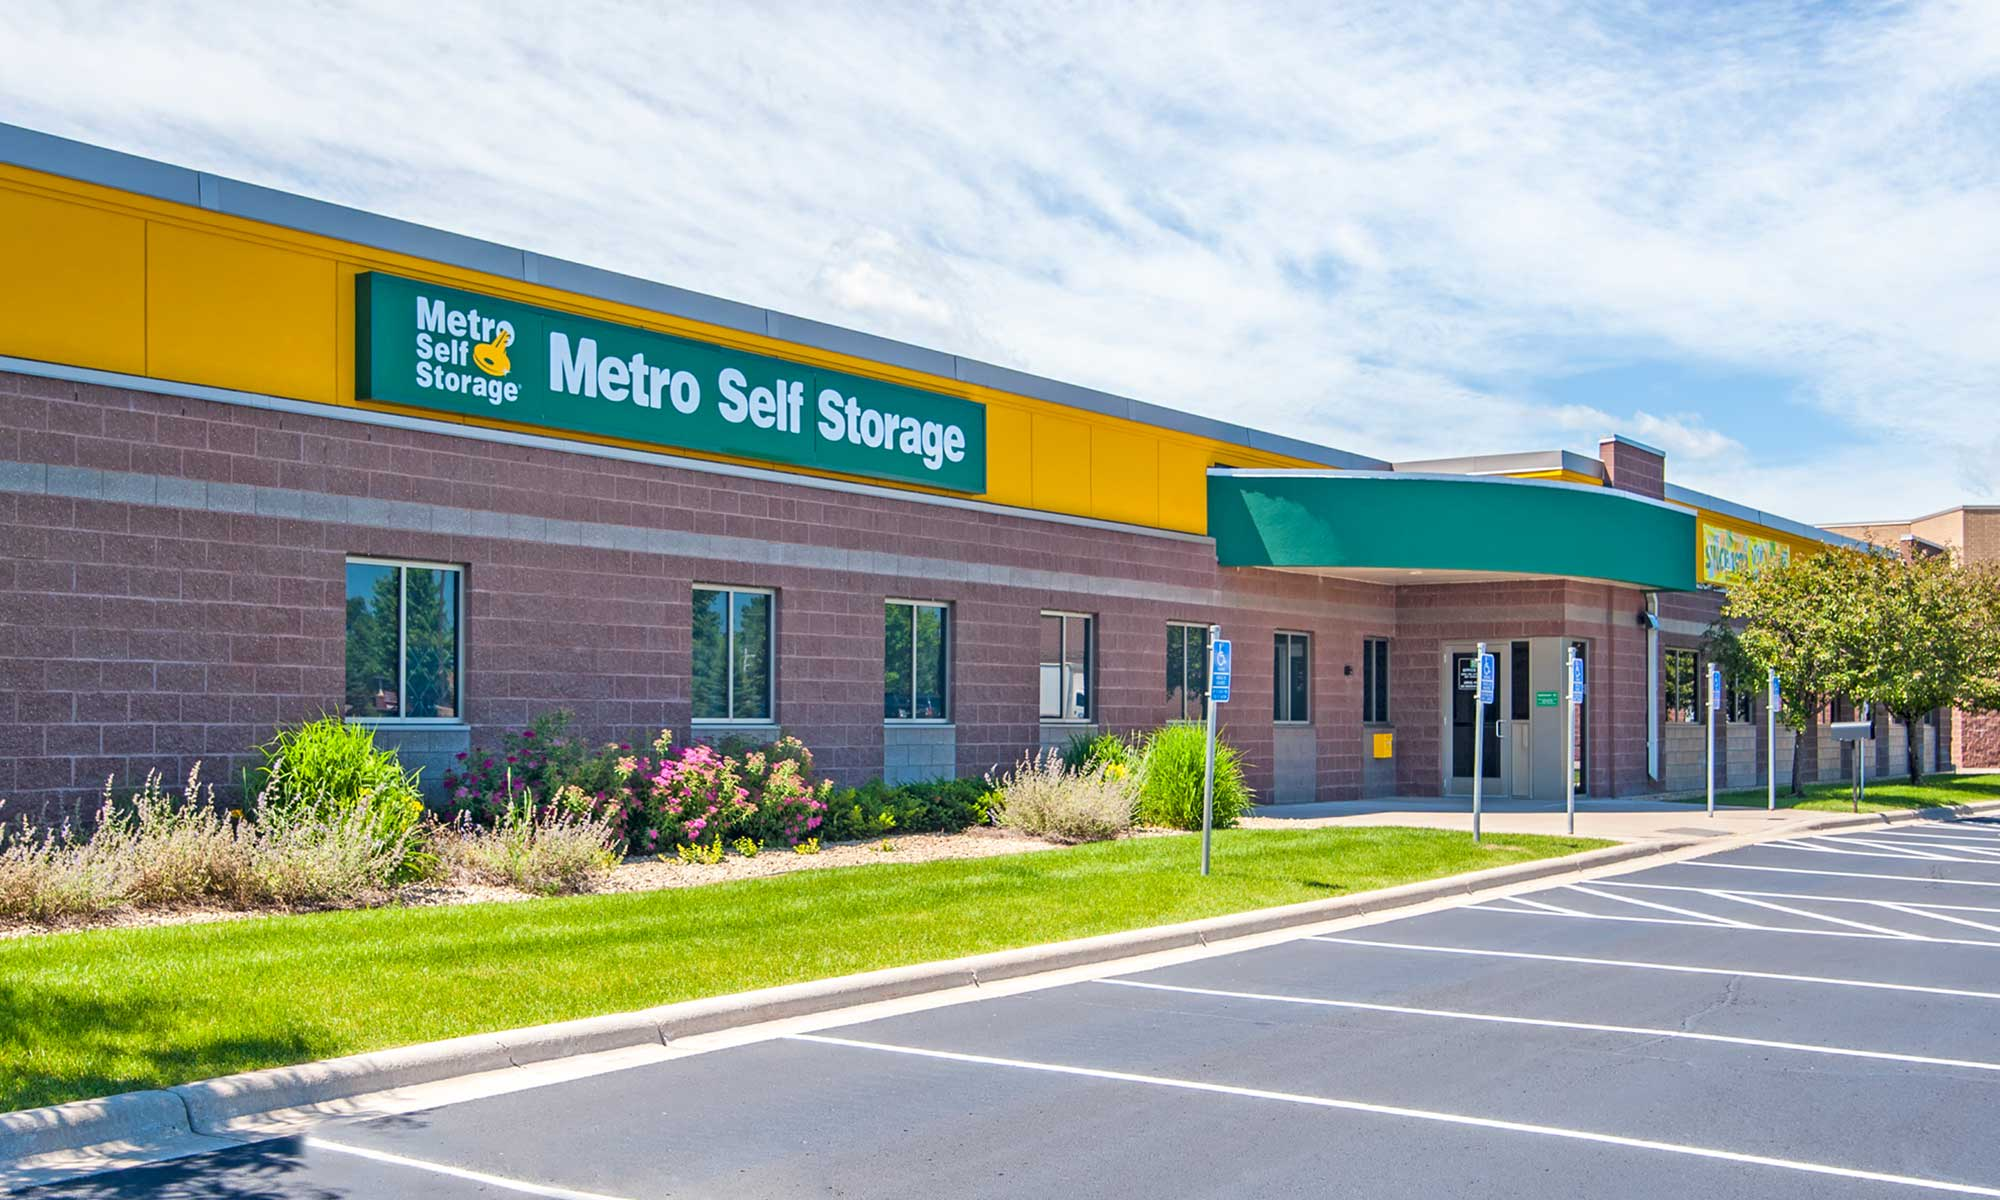 Metro Self Storage in Orono, MN